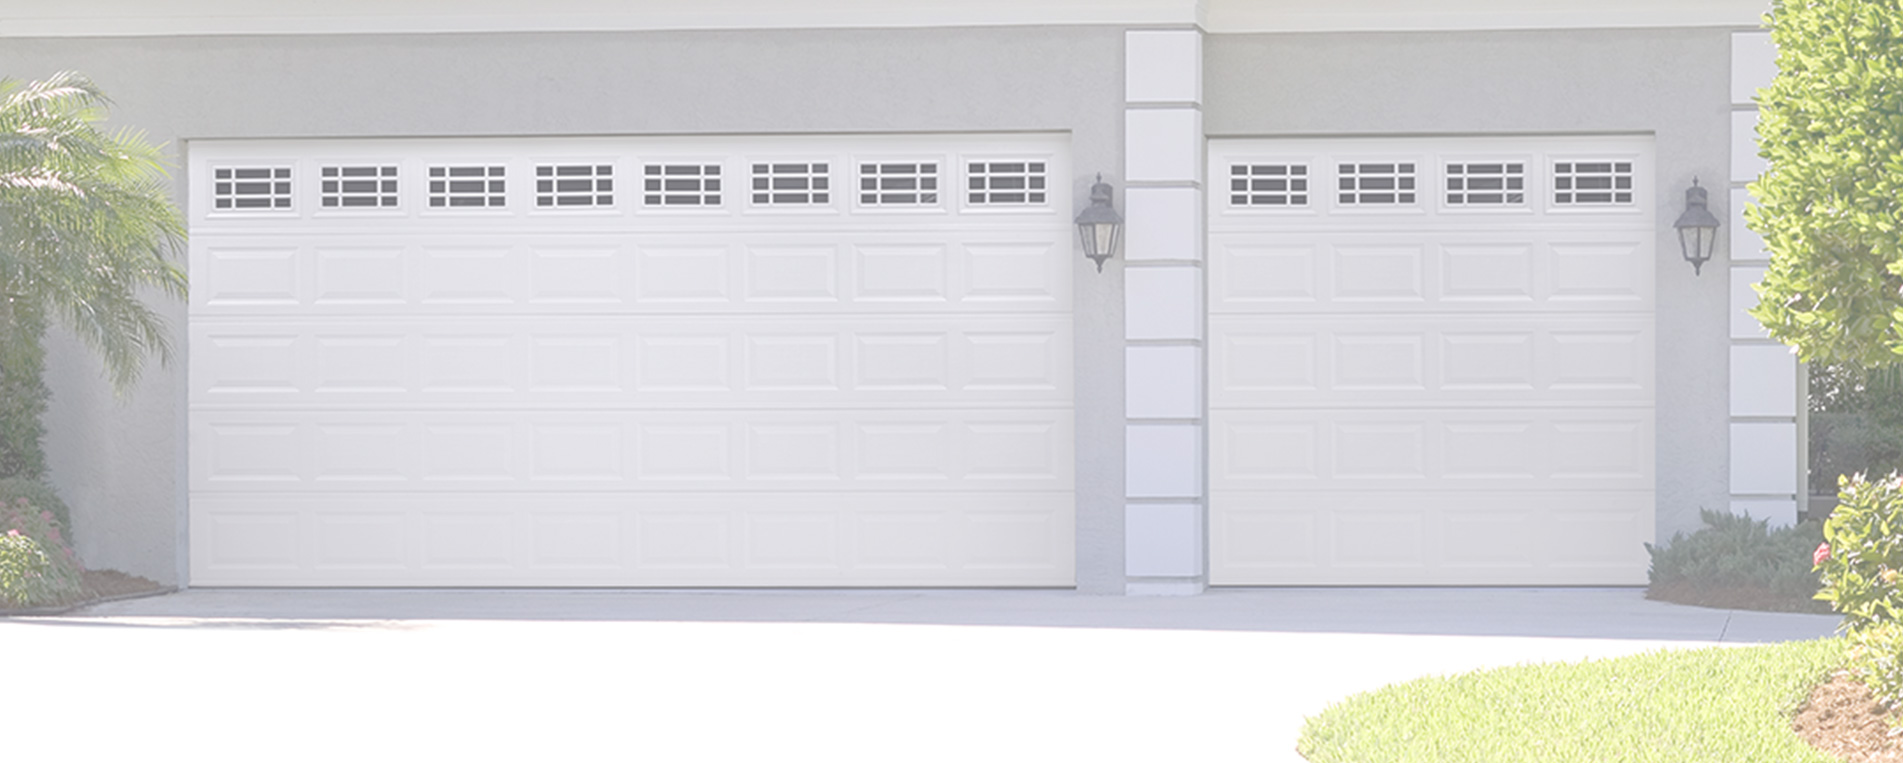 Garage Door Wont Work Contact Our Repair Technicians In Sugar